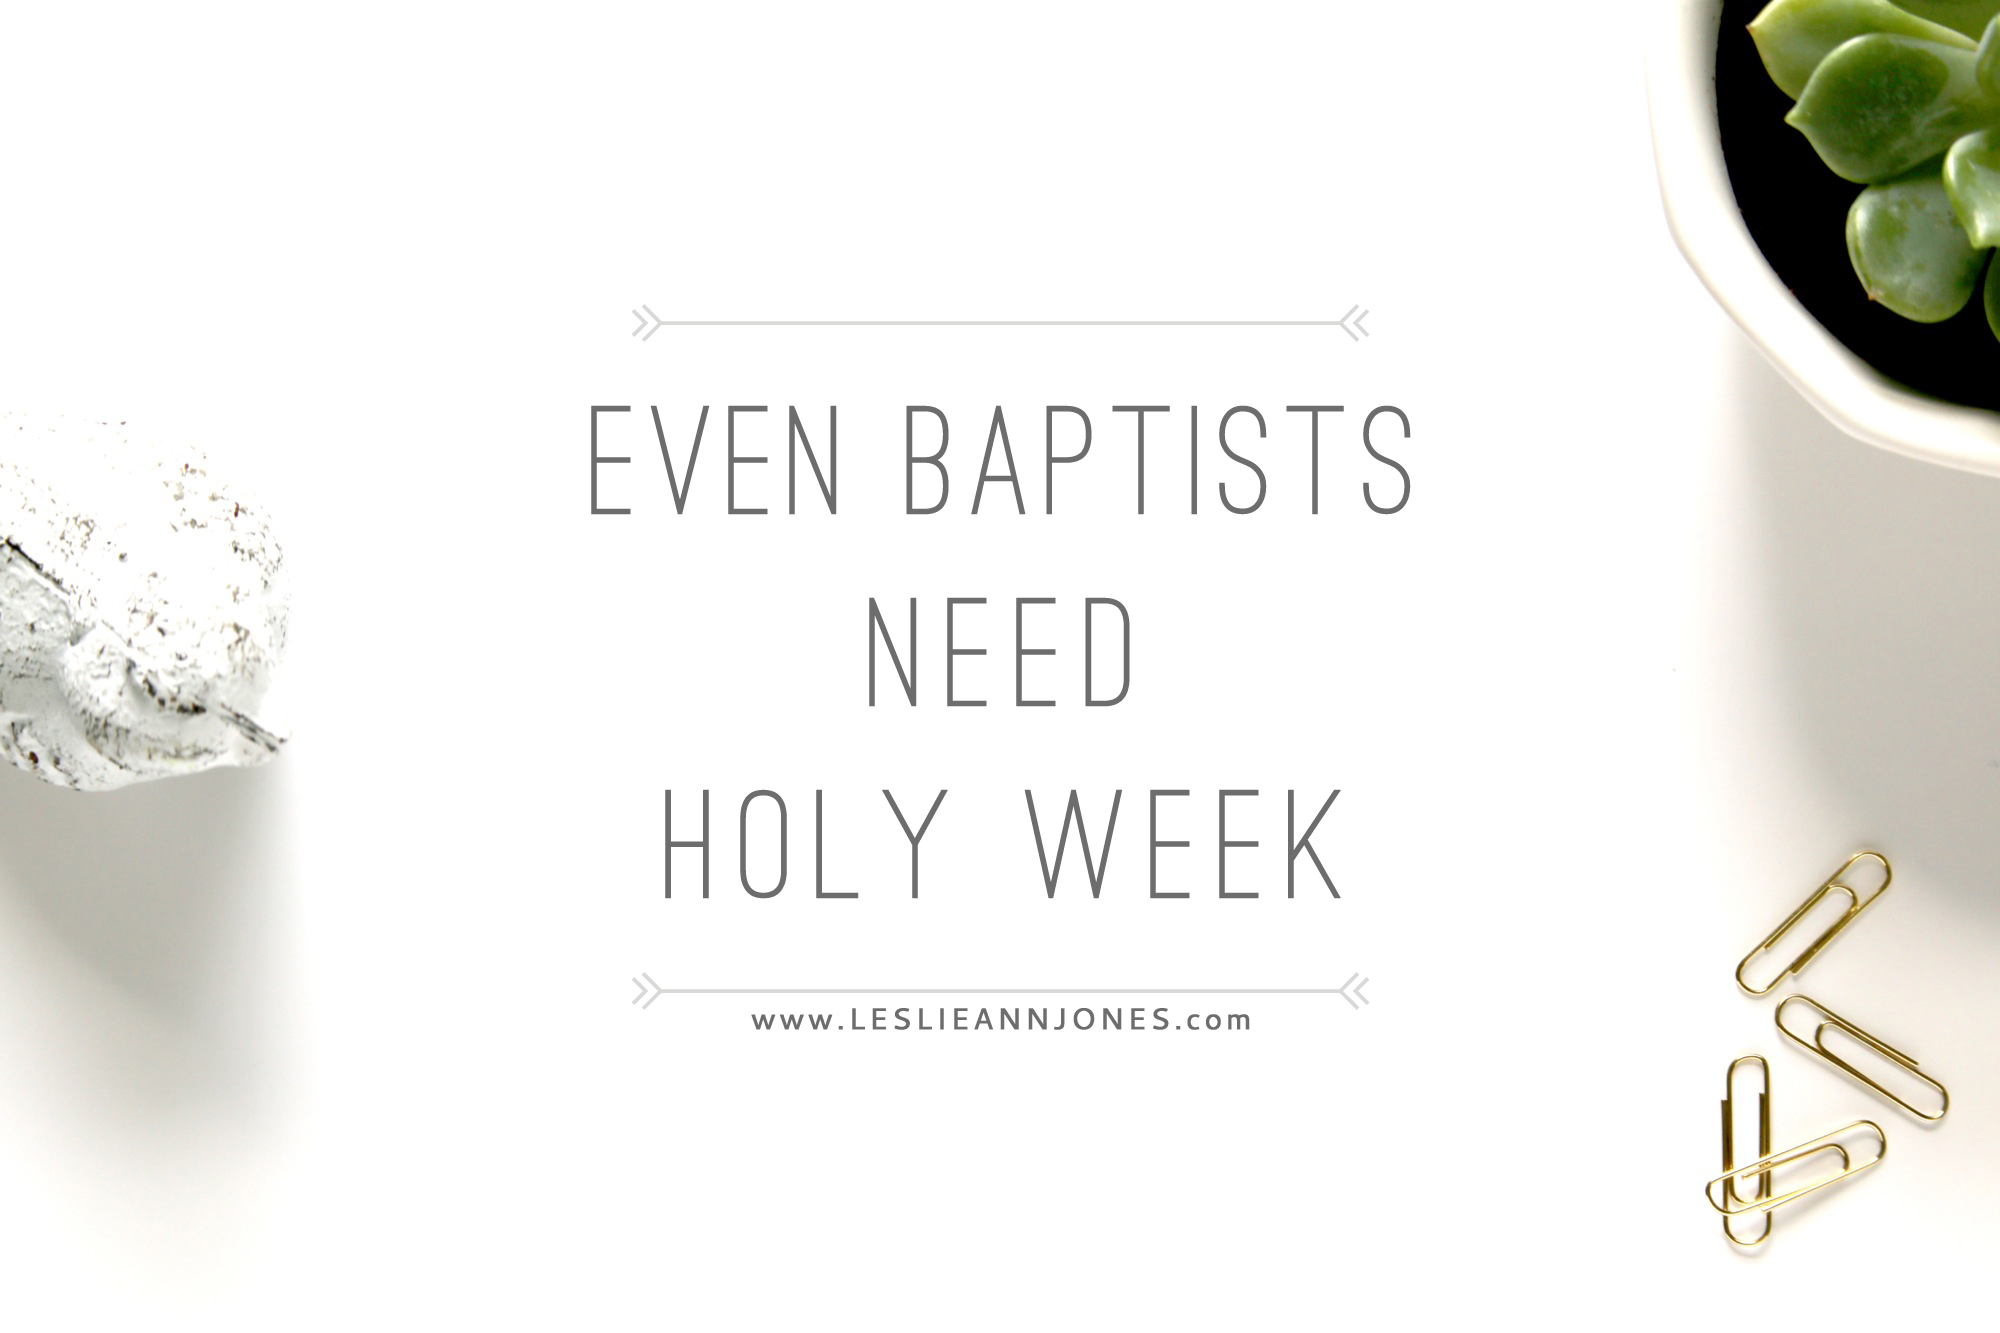 Even Baptists Need Holy Week, Reflections on liturgy via leslieannjones.com